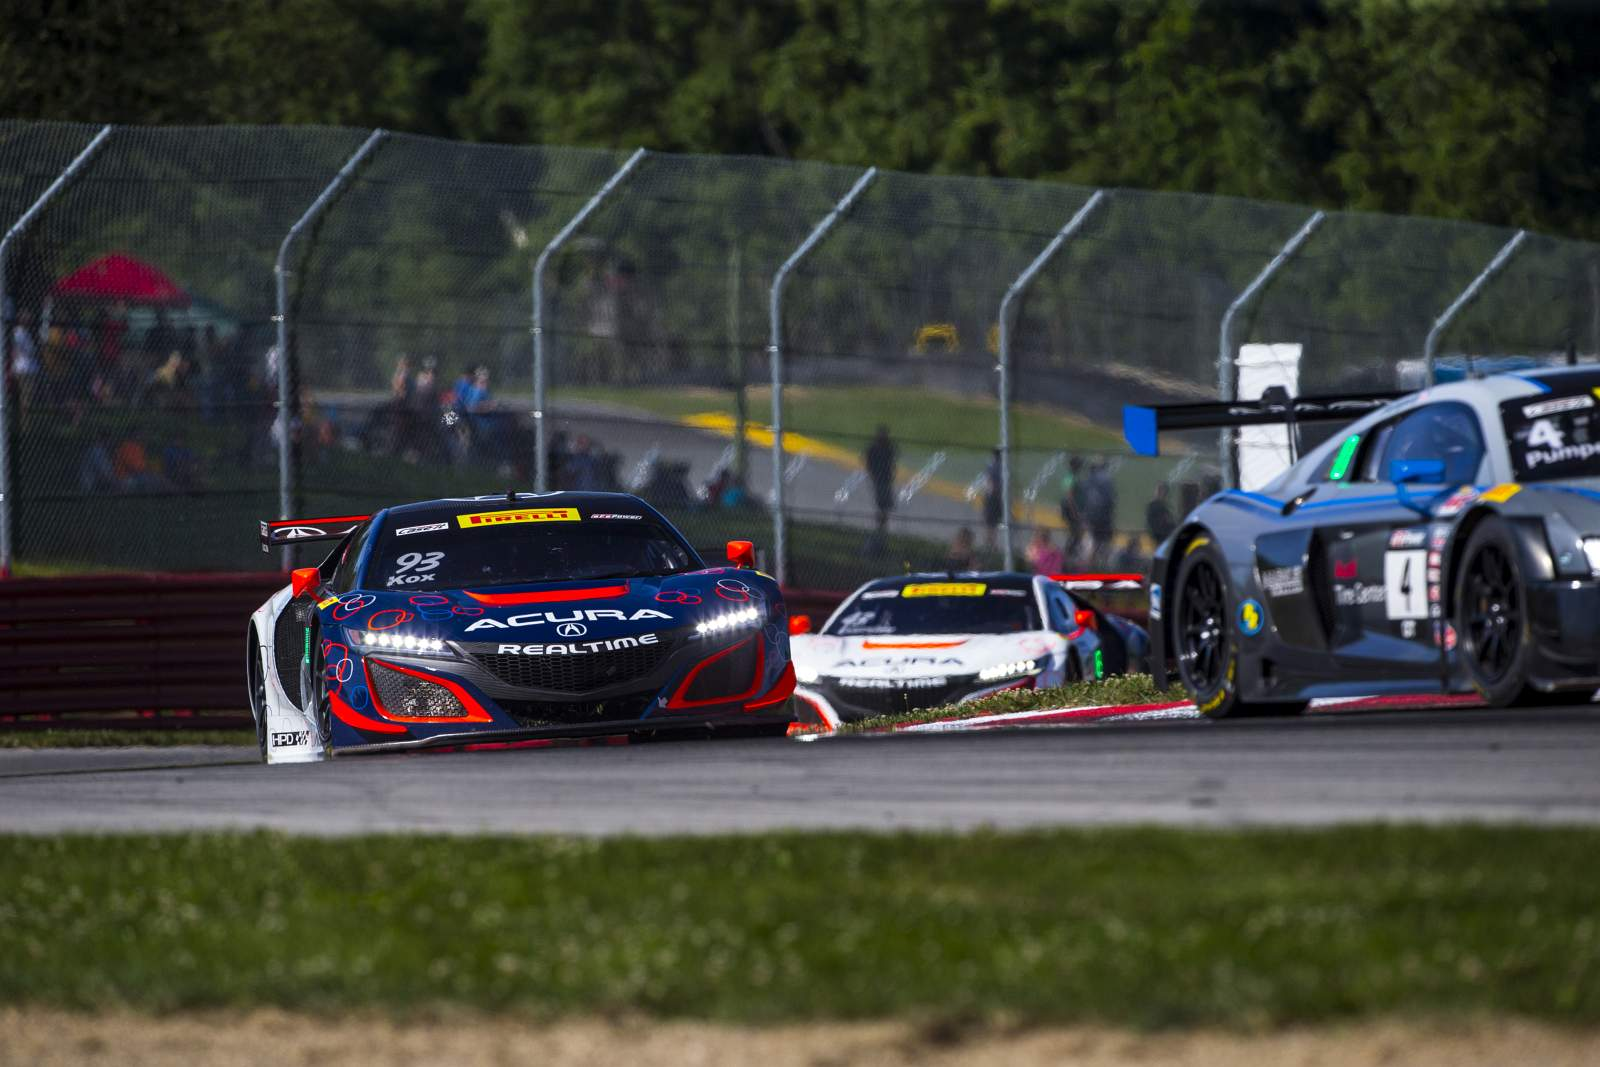 peter-kox-realtime-racing-pirelli-world-challenge-mid-ohio-45